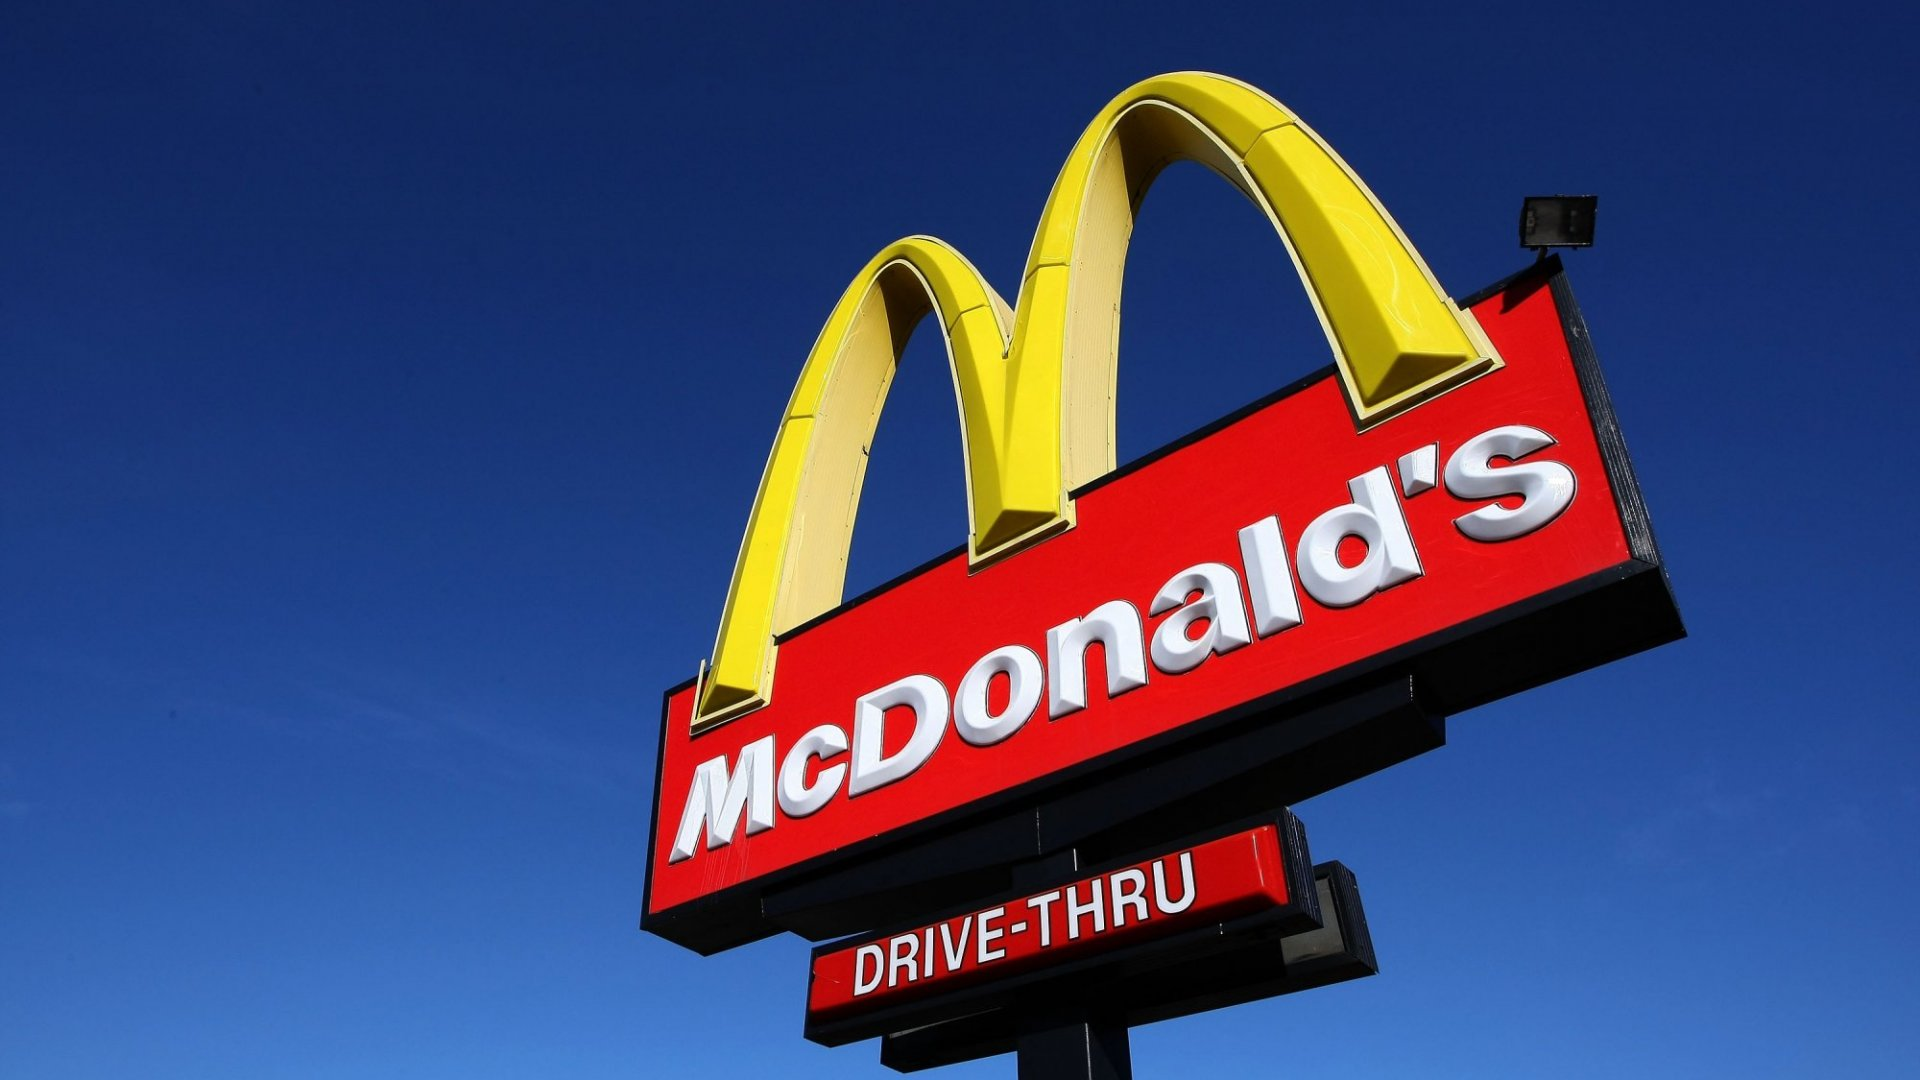 McDonald's Astonishing New Menu Change Is Going to Have a Remarkable Impact on the U.S. Fast-Food Industry